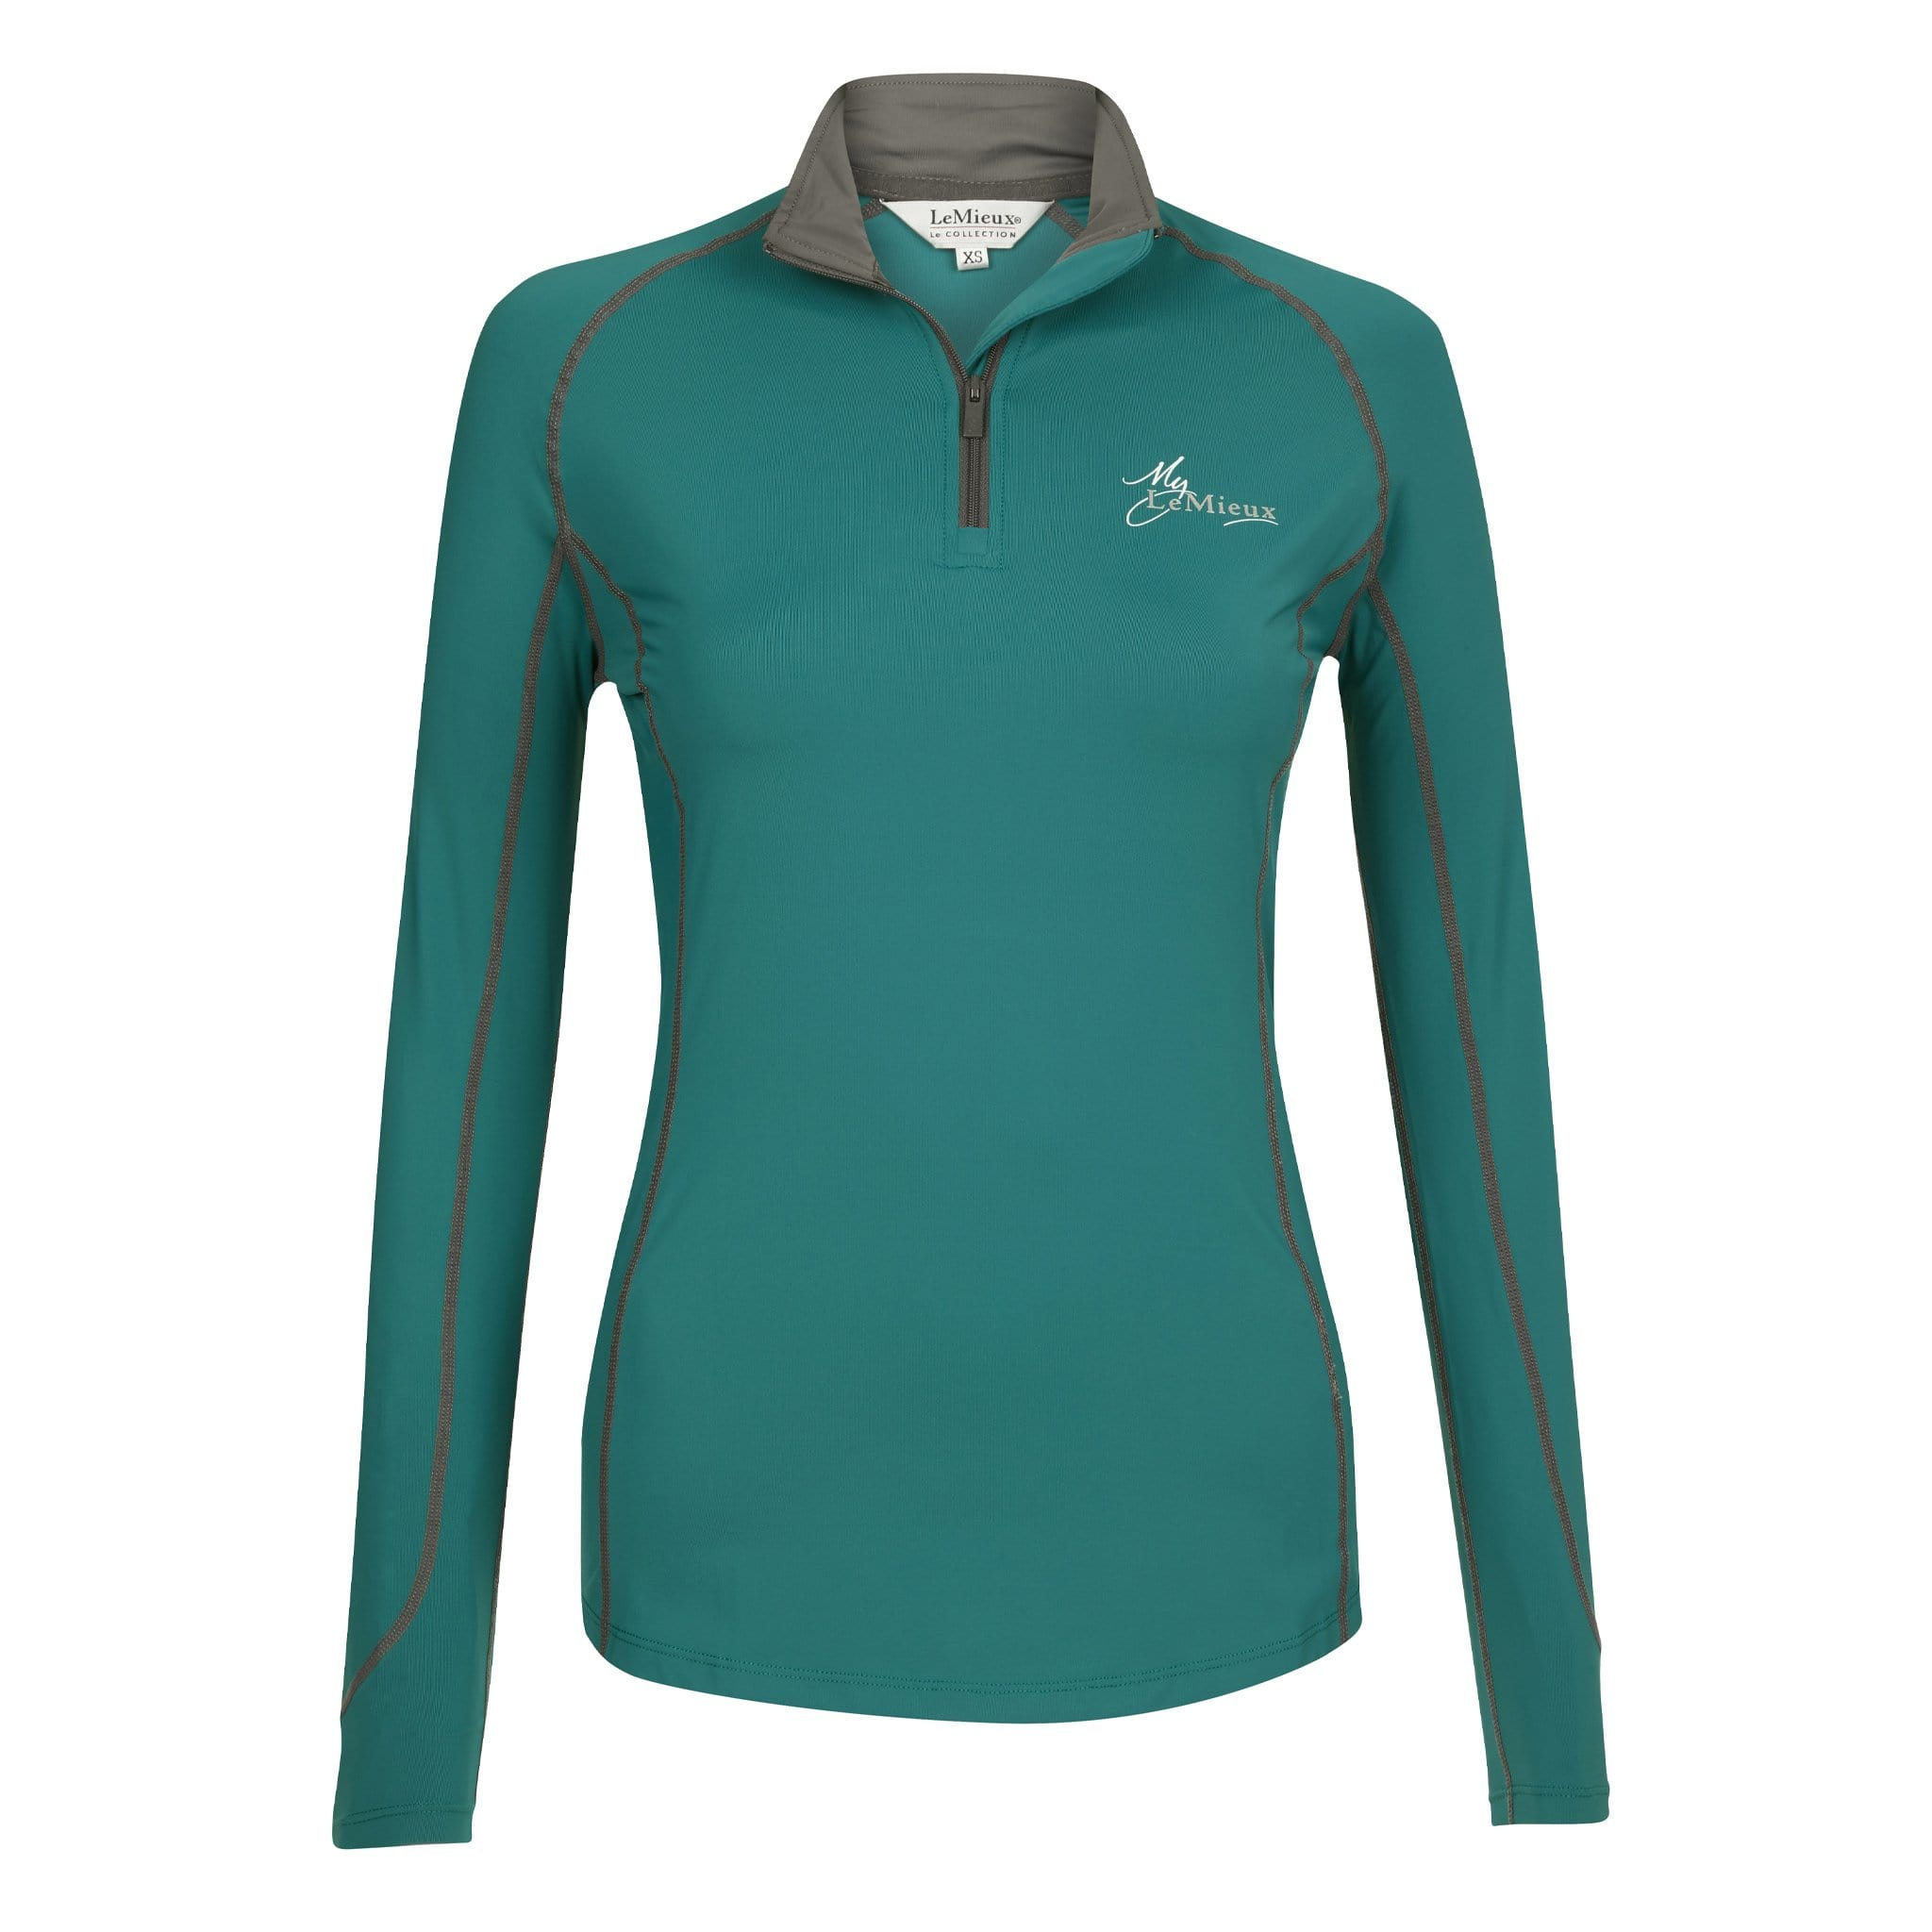 LeMieux Base Layer Peacock Front 5468.